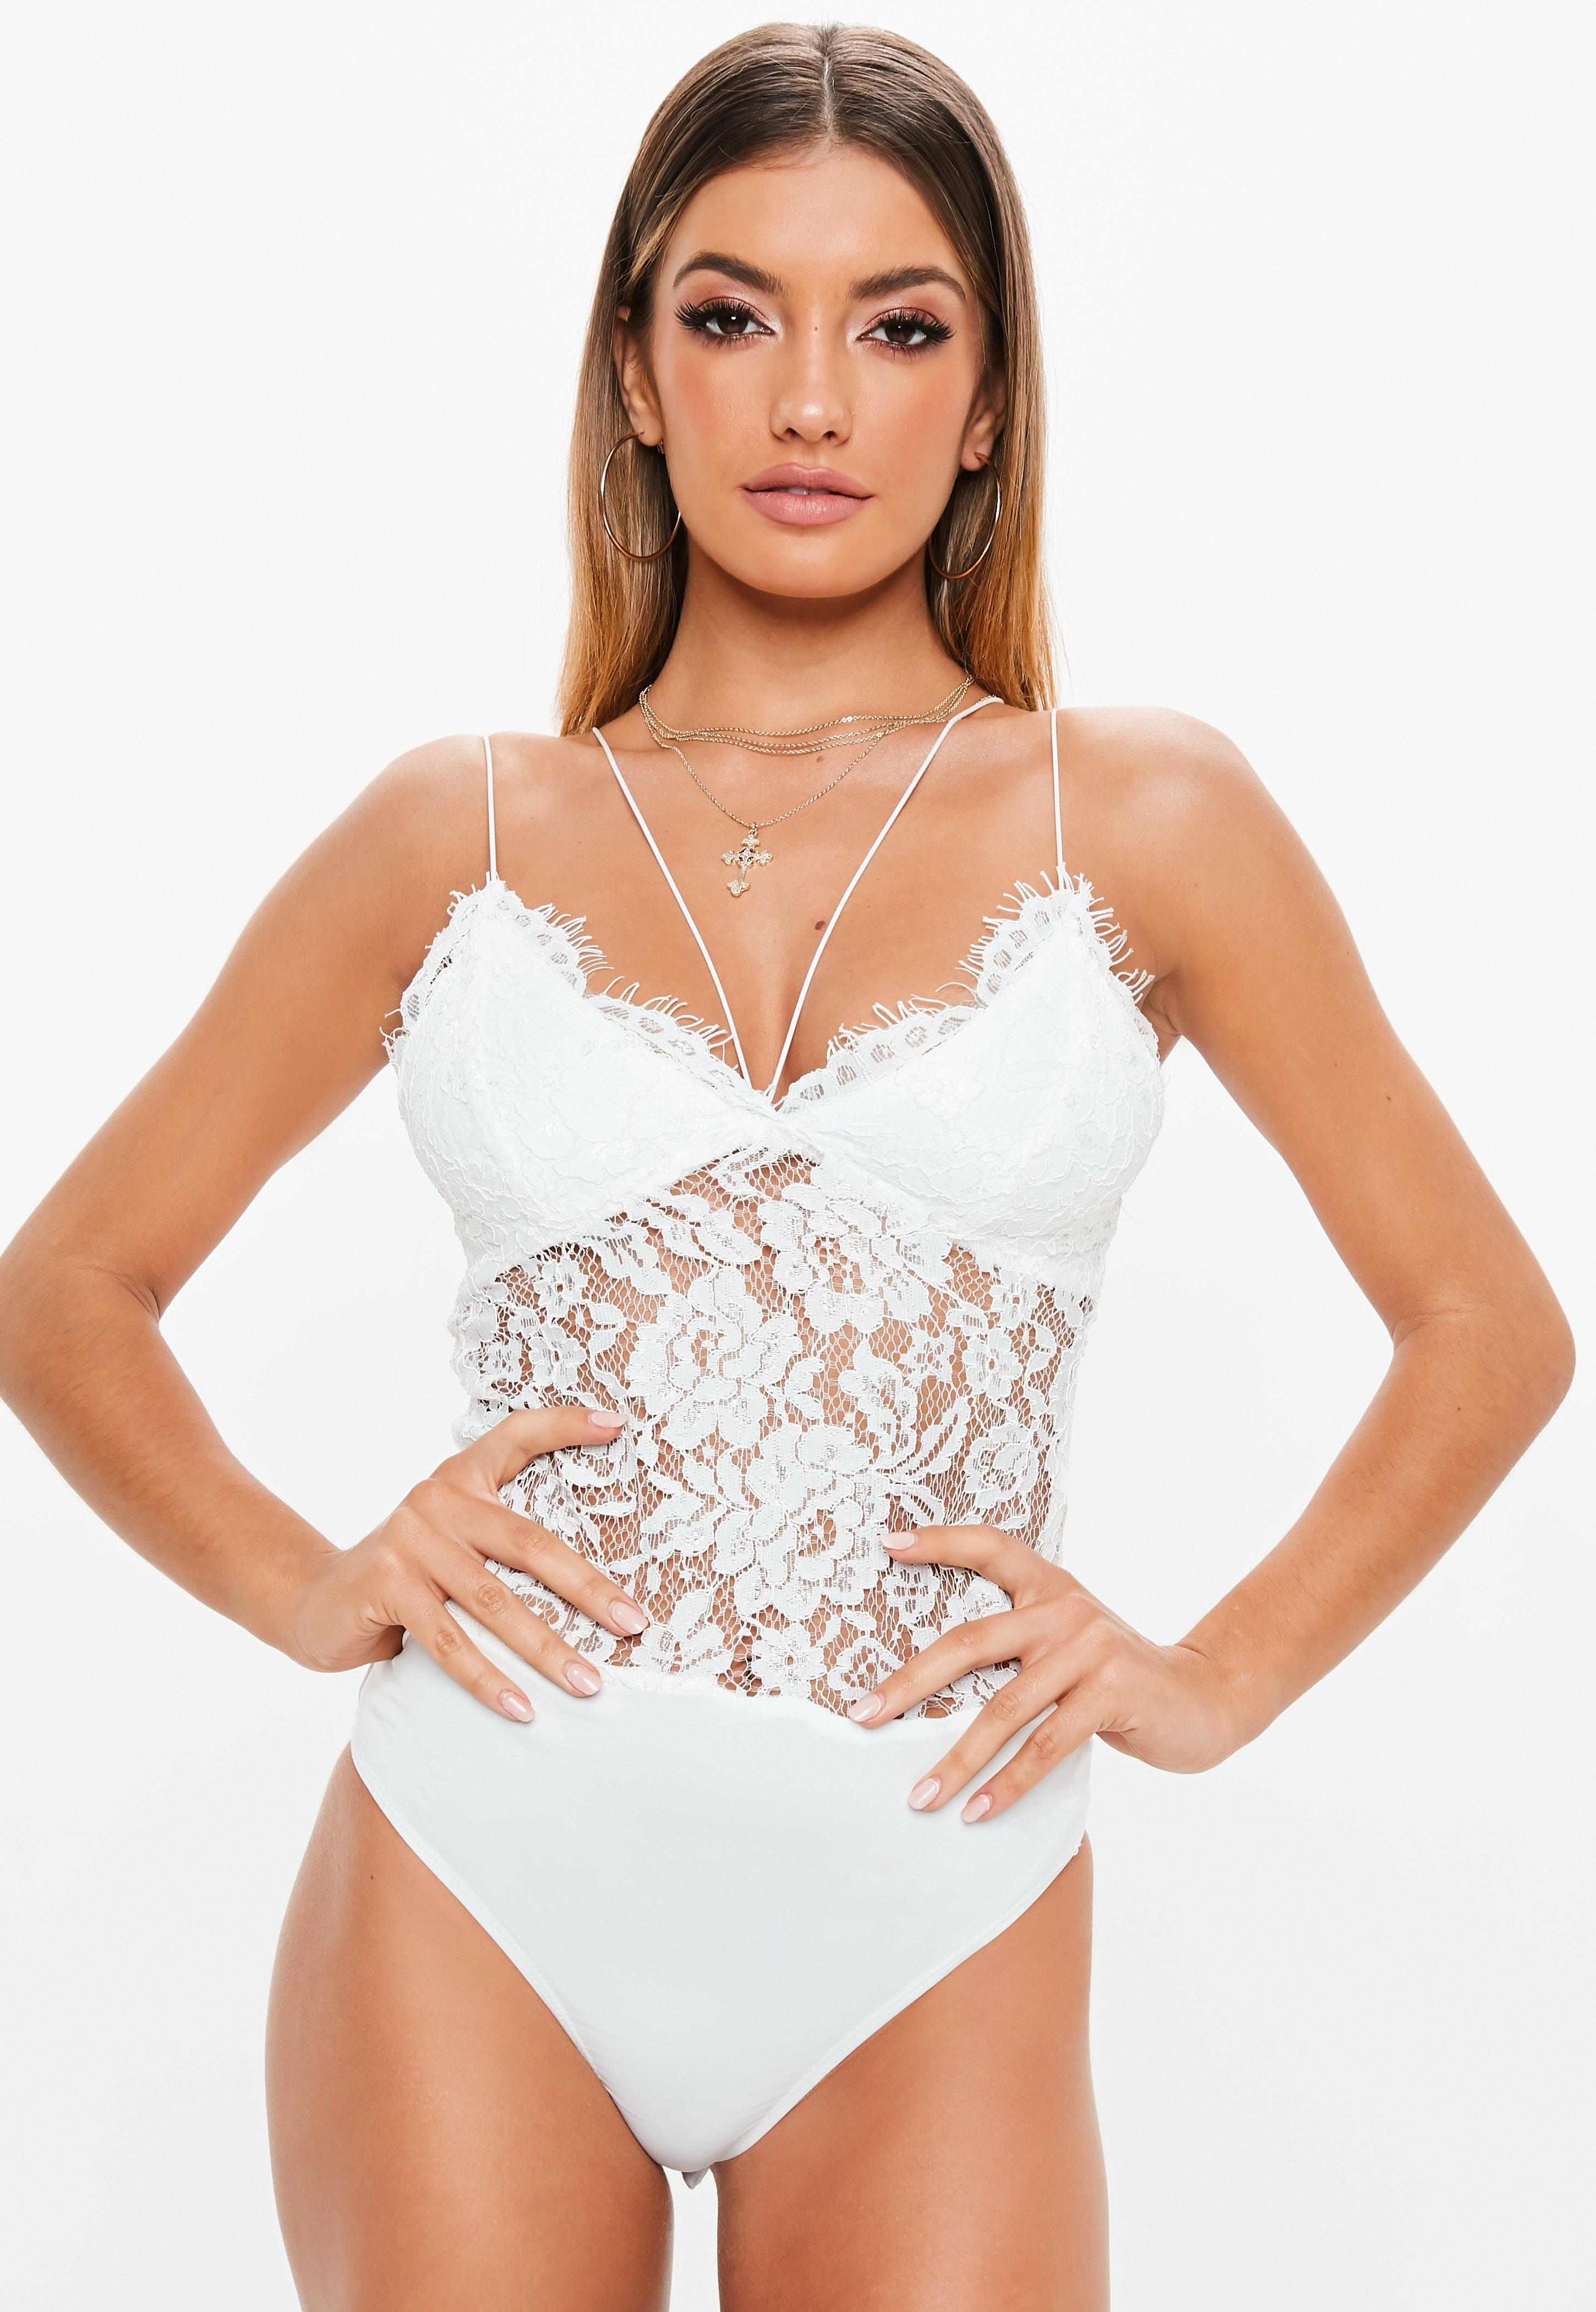 06fabe9e13 Missguided - Premium White Corded Lace Harness Bodysuit - Lyst. View  fullscreen